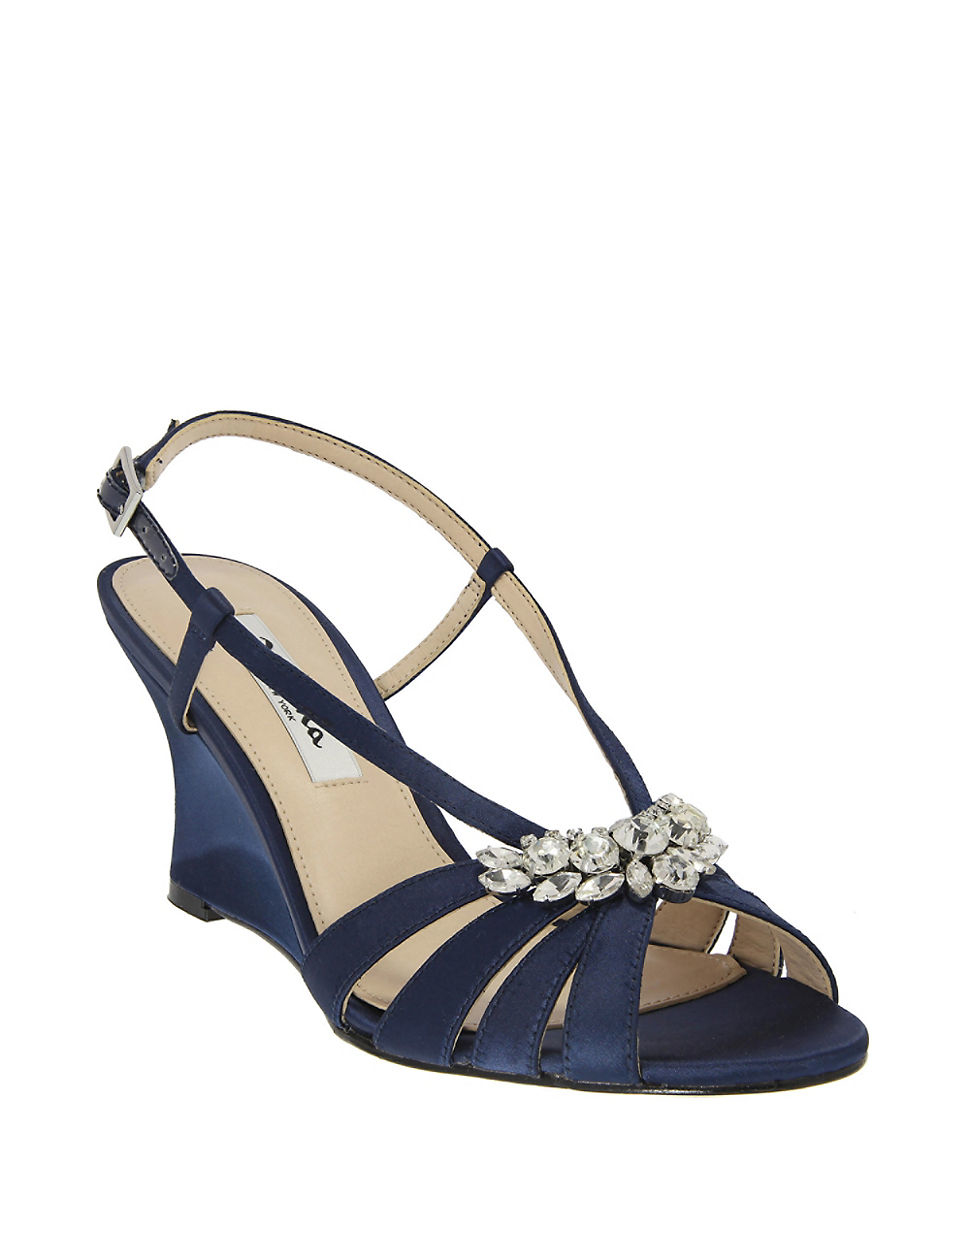 Lyst - Nina Viani Satin Wedge Sandals In Blue